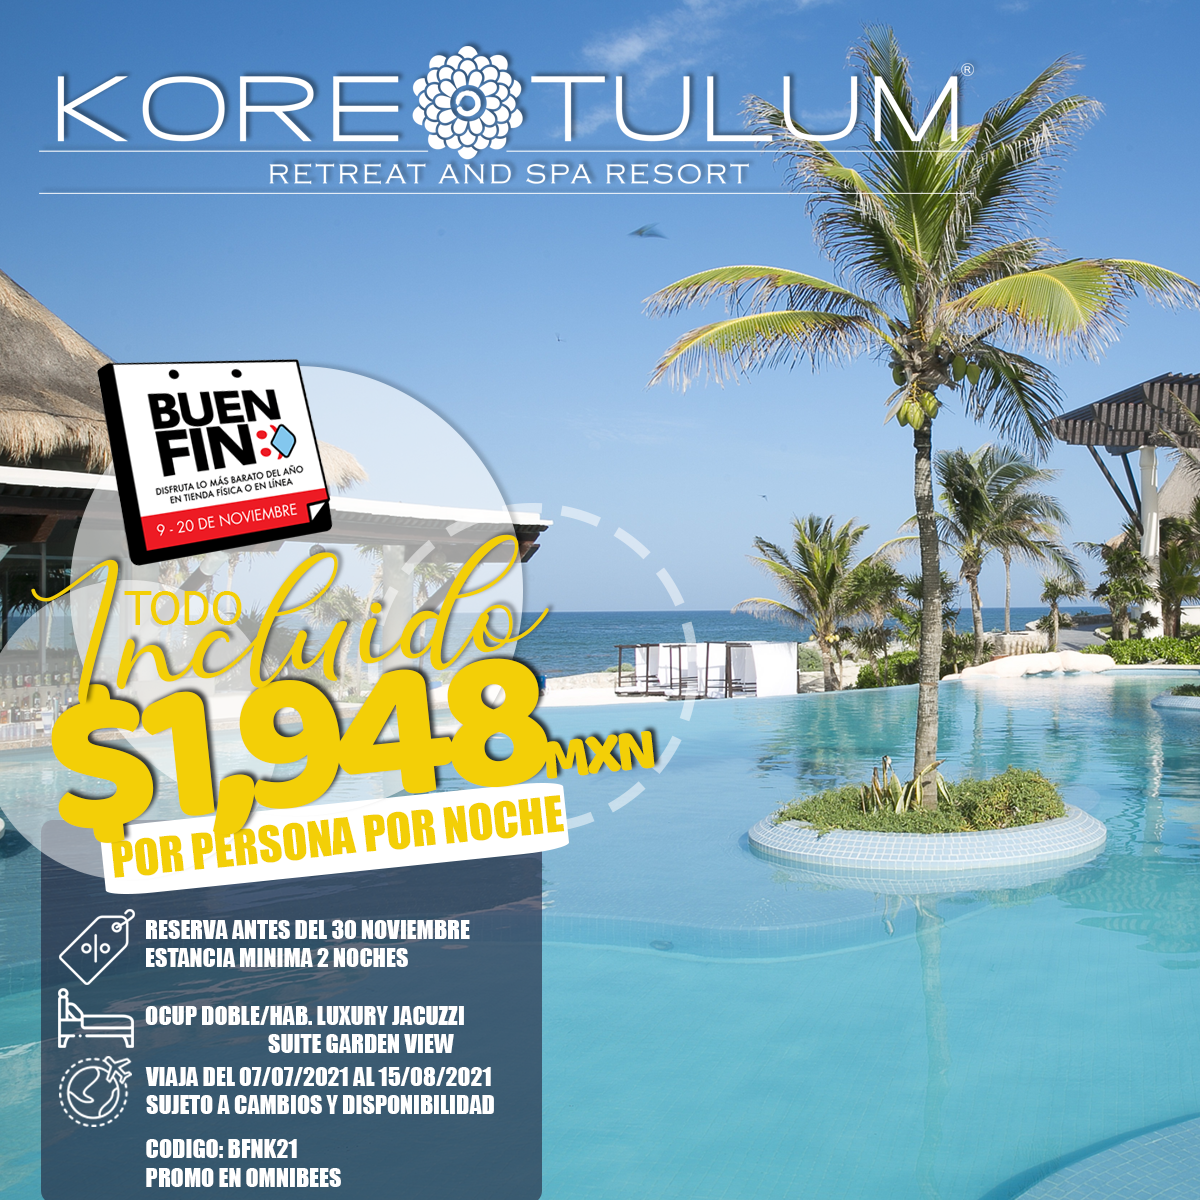 KORE TULUM RETREAT AND SPA RESORT